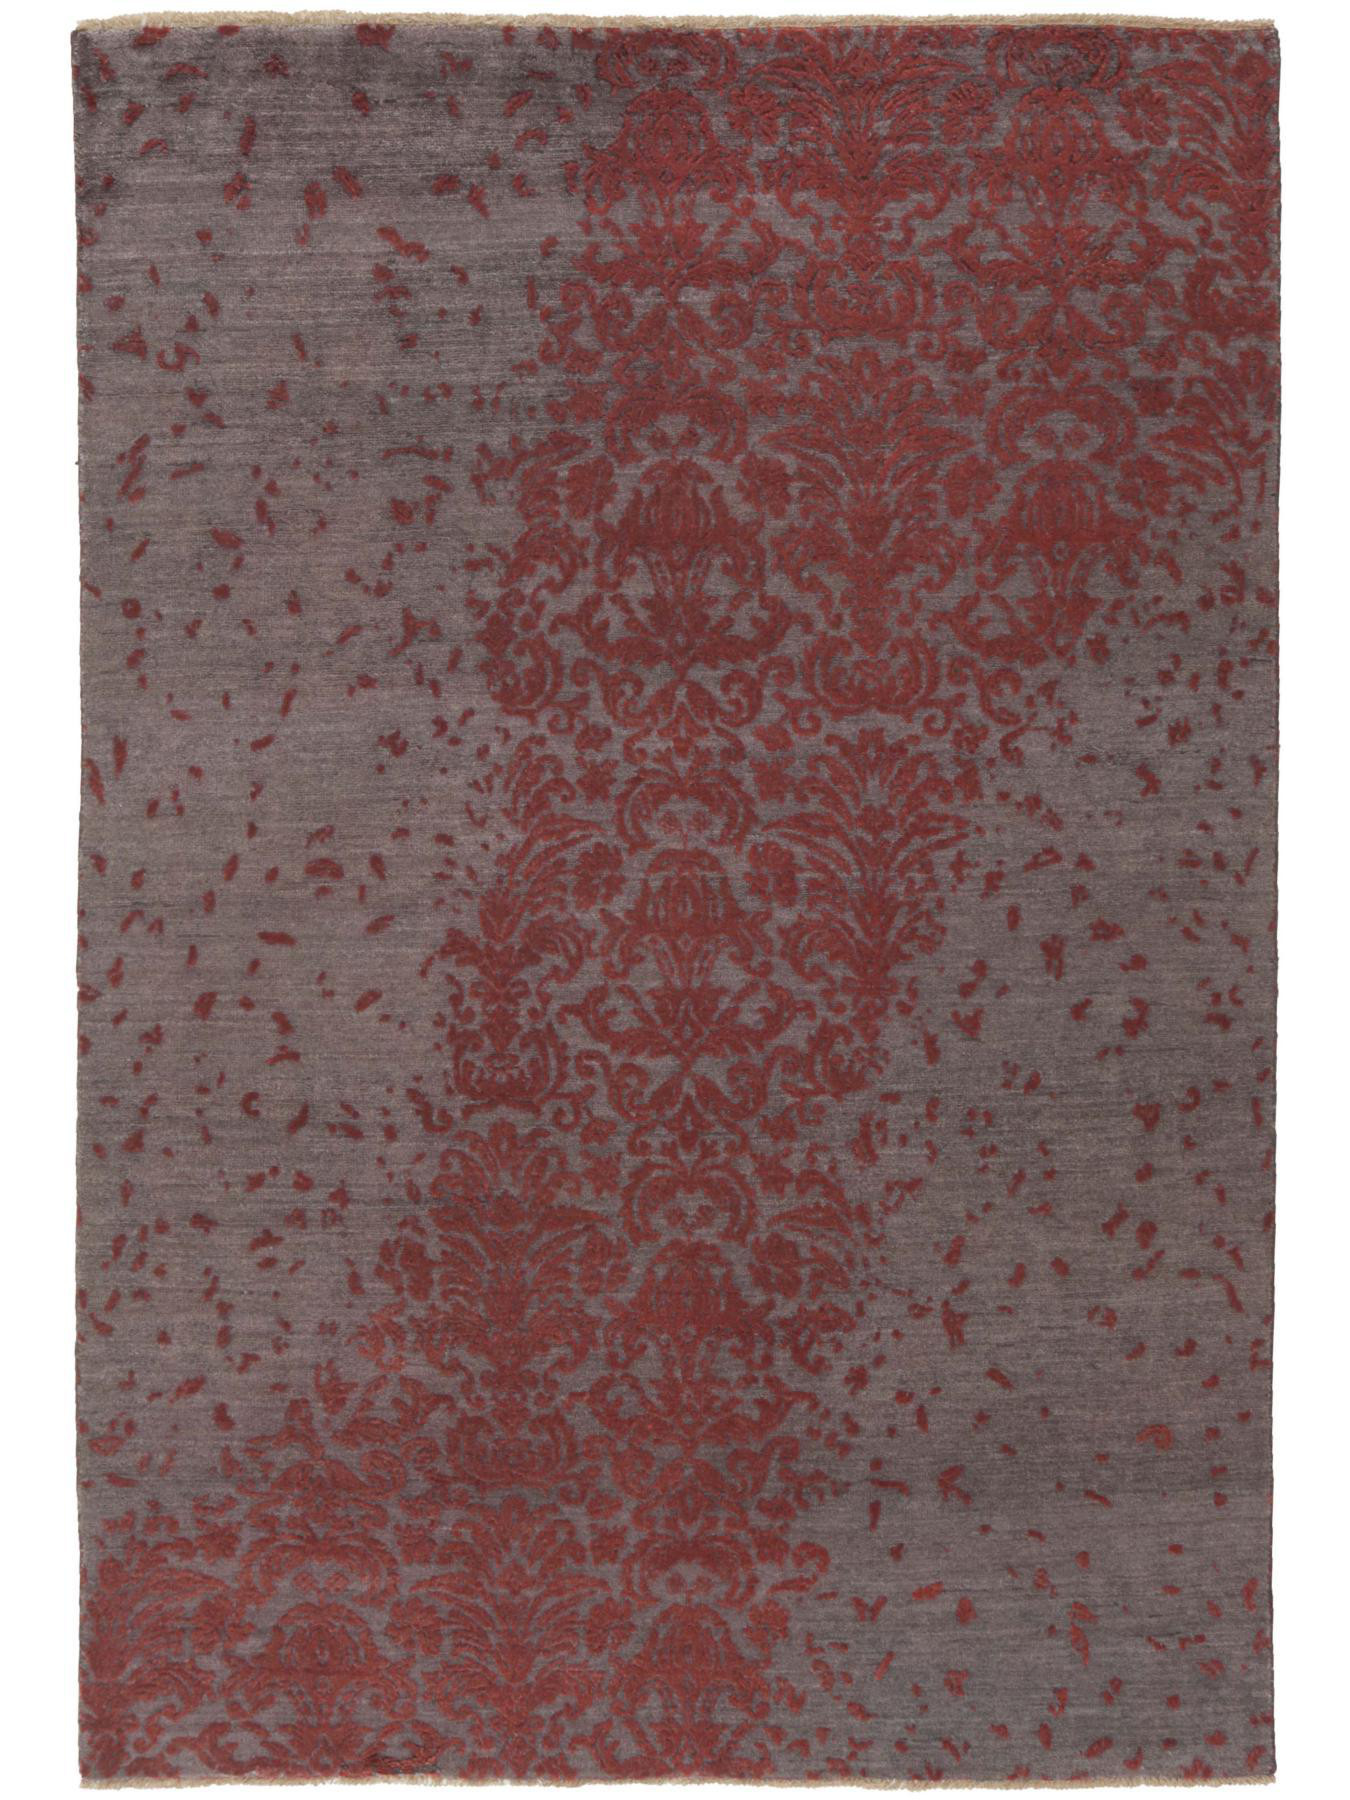 Luxury carpets - Damask-AL-445E B-22/B-30